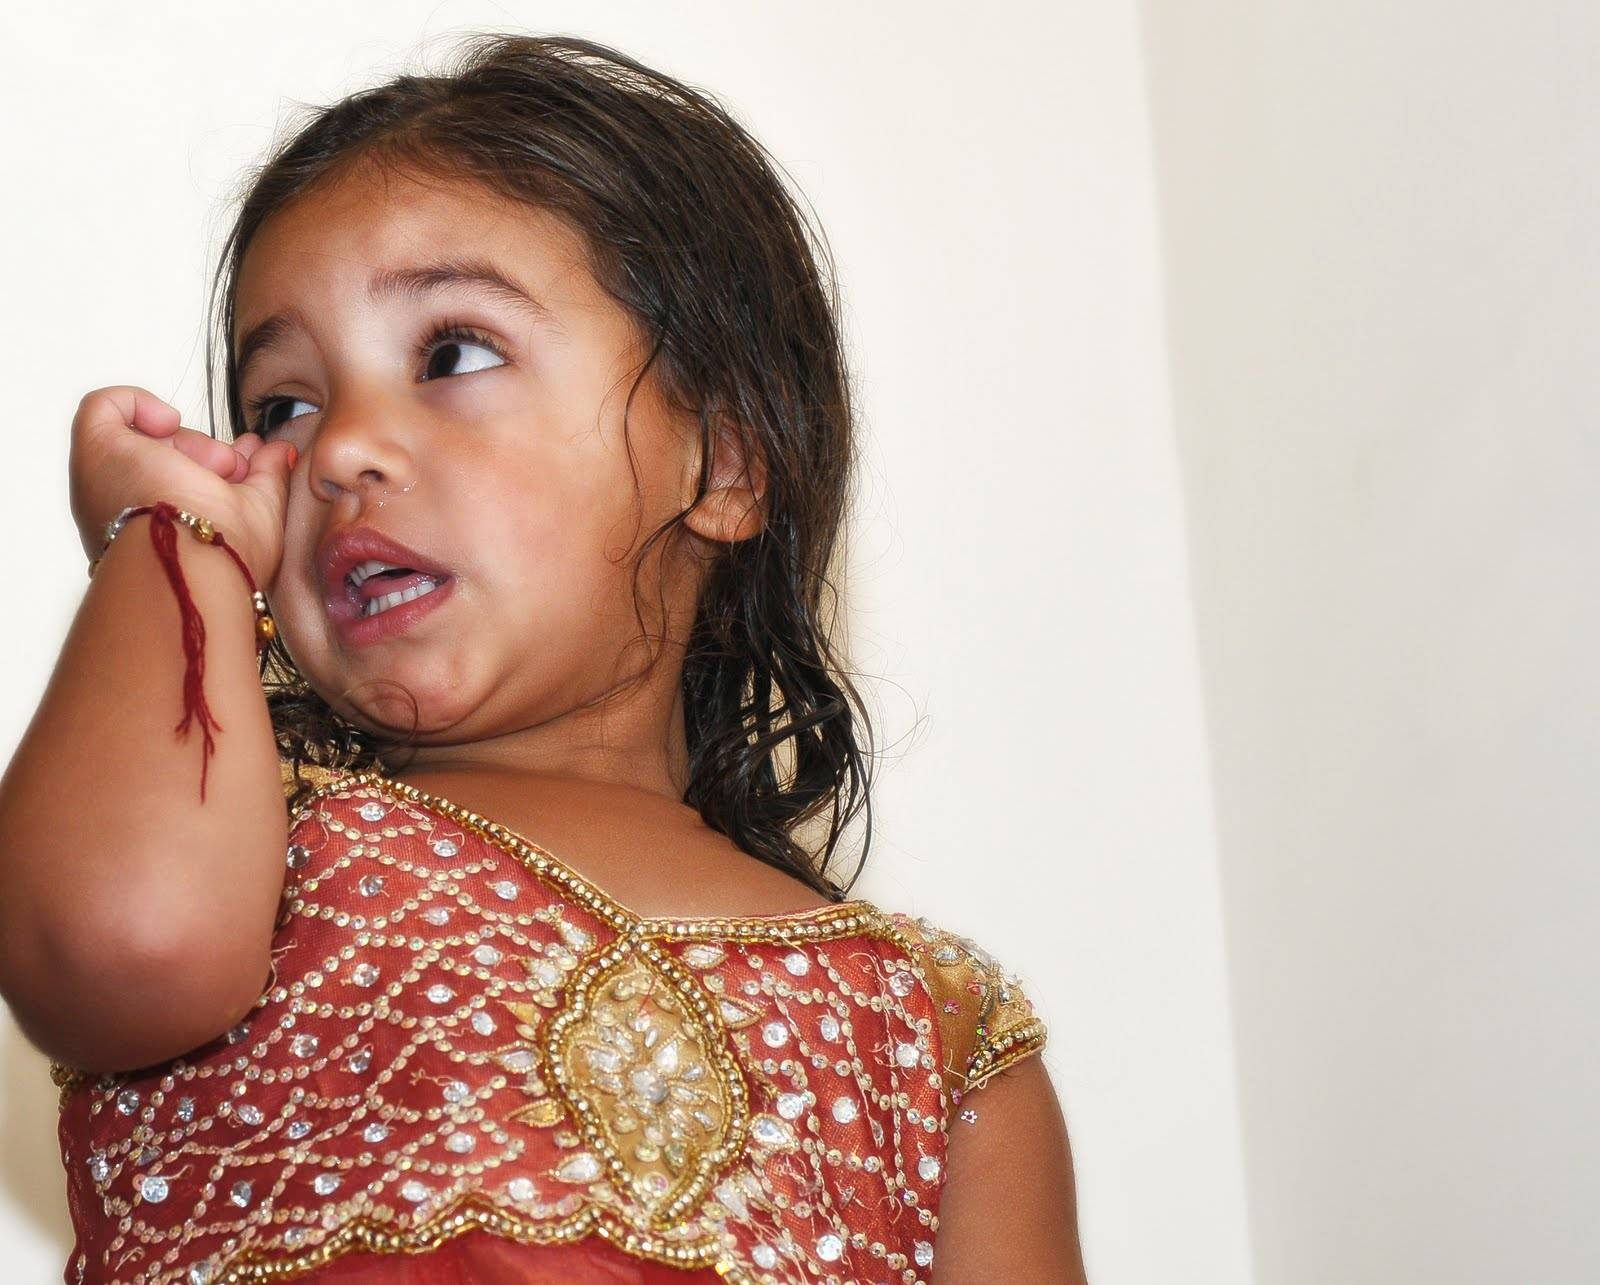 Indian Girl on the Stairs